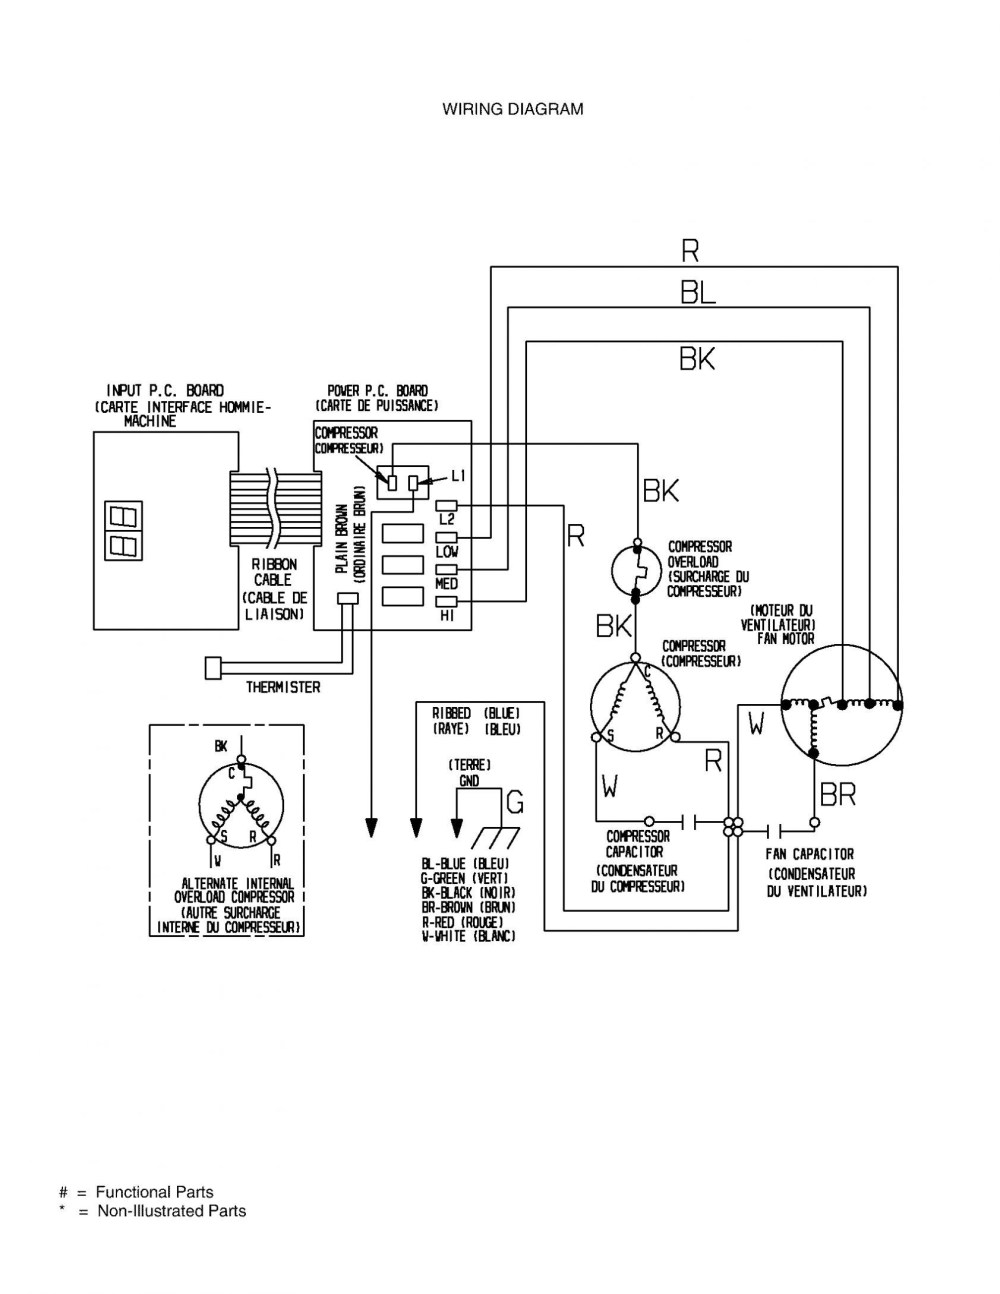 medium resolution of residential air conditioner wiring diagram wiring diagrams for hvac valid tower ac wiring diagram inspirationa